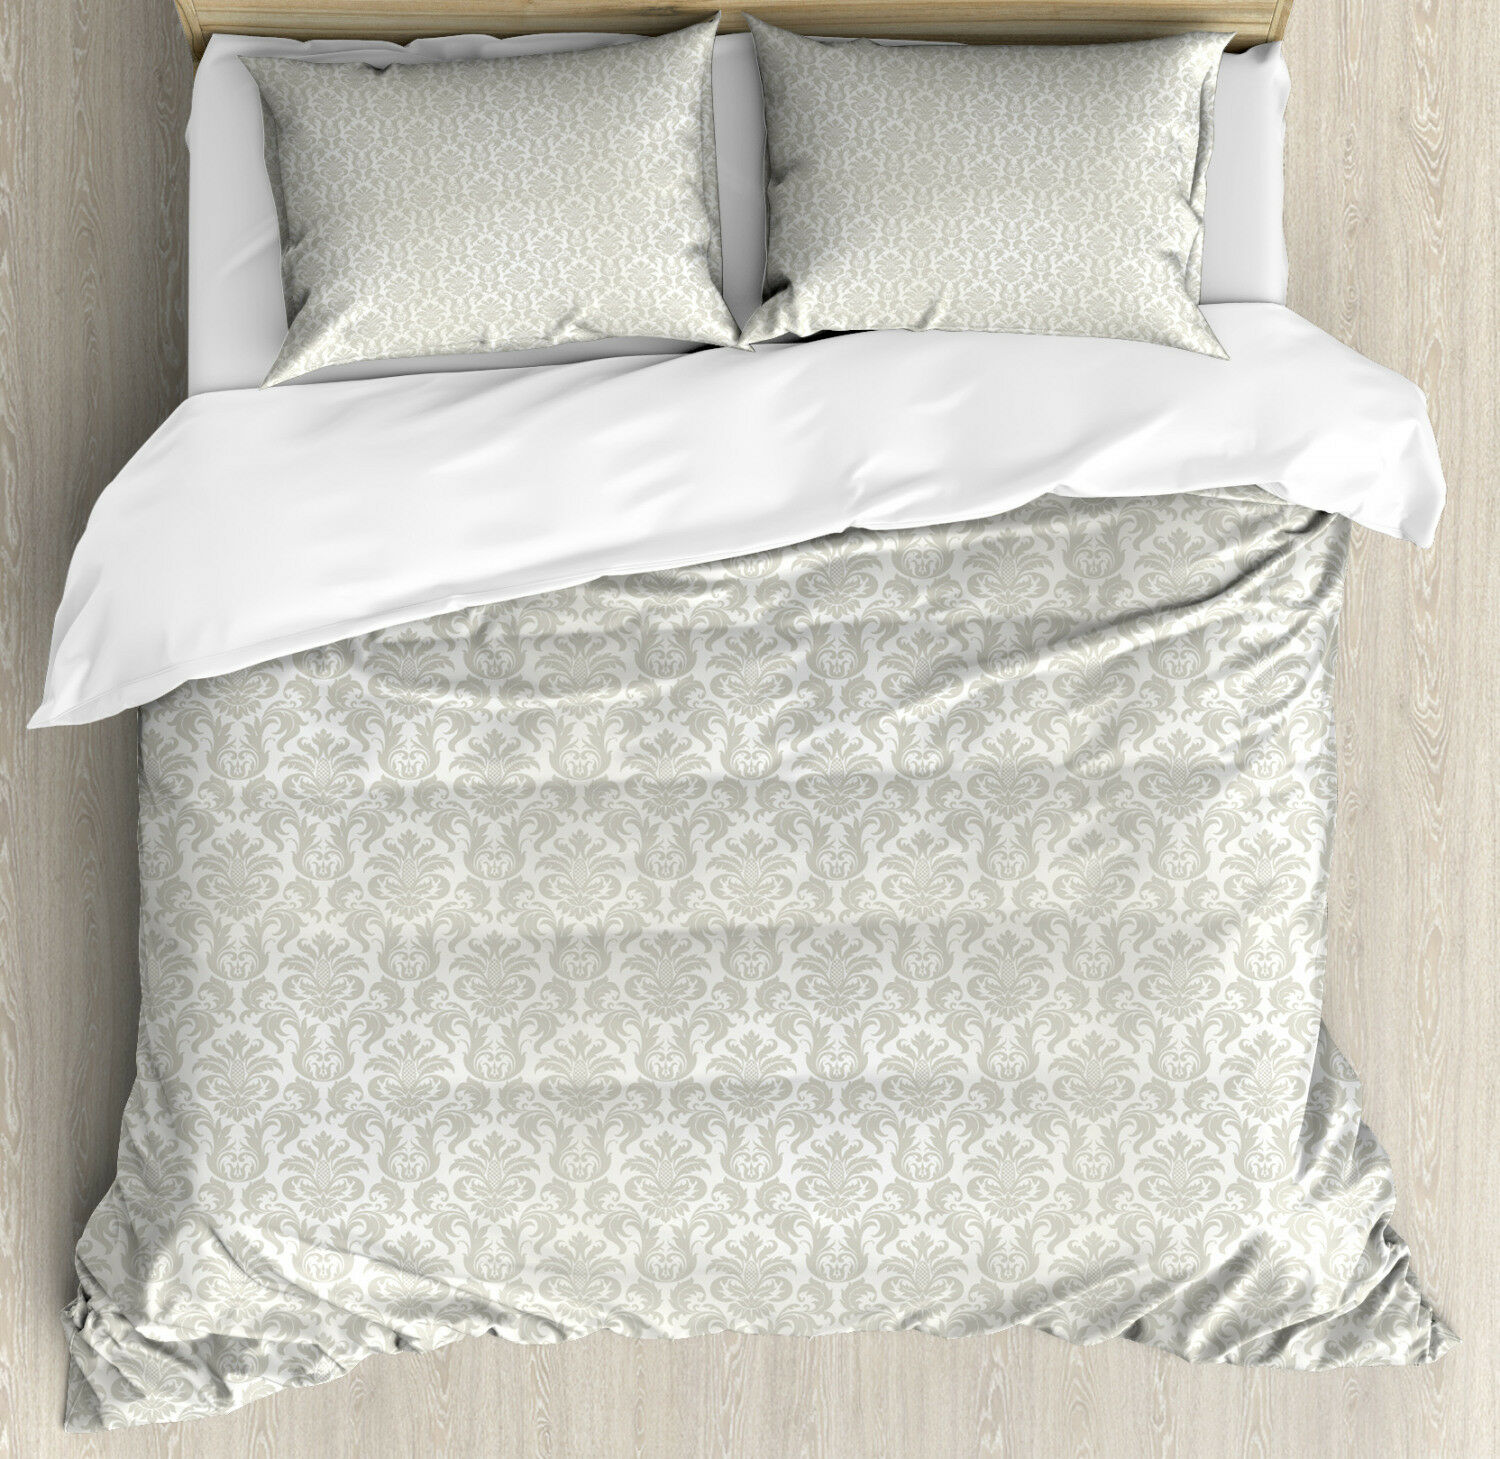 Damask Duvet Cover Set with Pillow Shams Bridal Abstract Classic Print